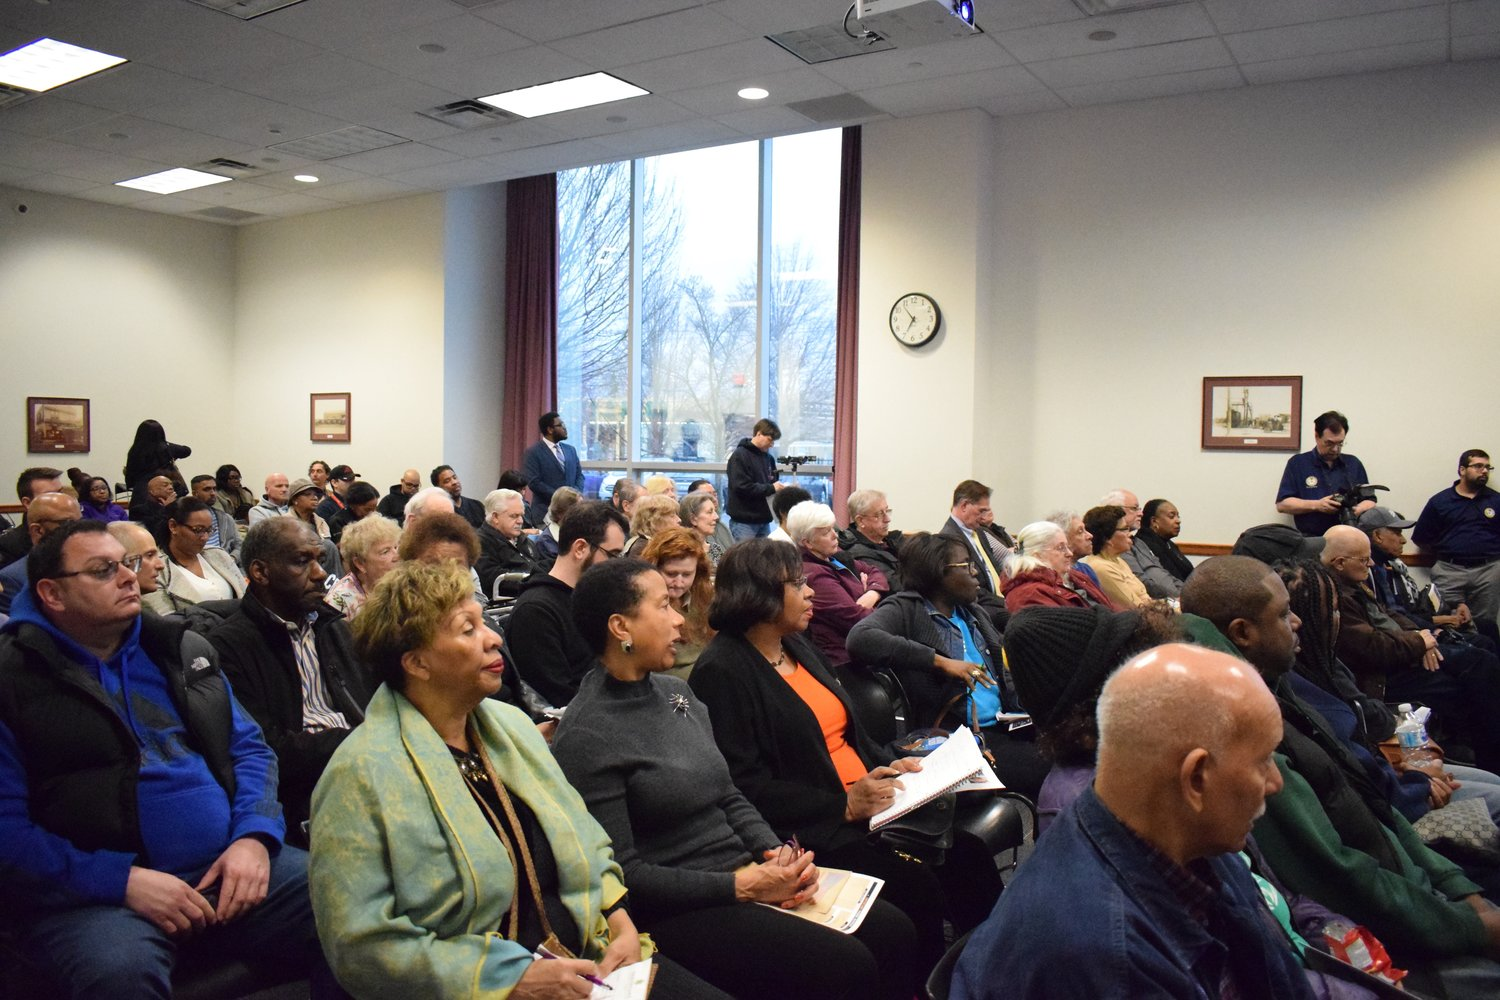 Local residents gathered at the Elmont Memorial Library for the Elmont Civic Meeting on April 11.